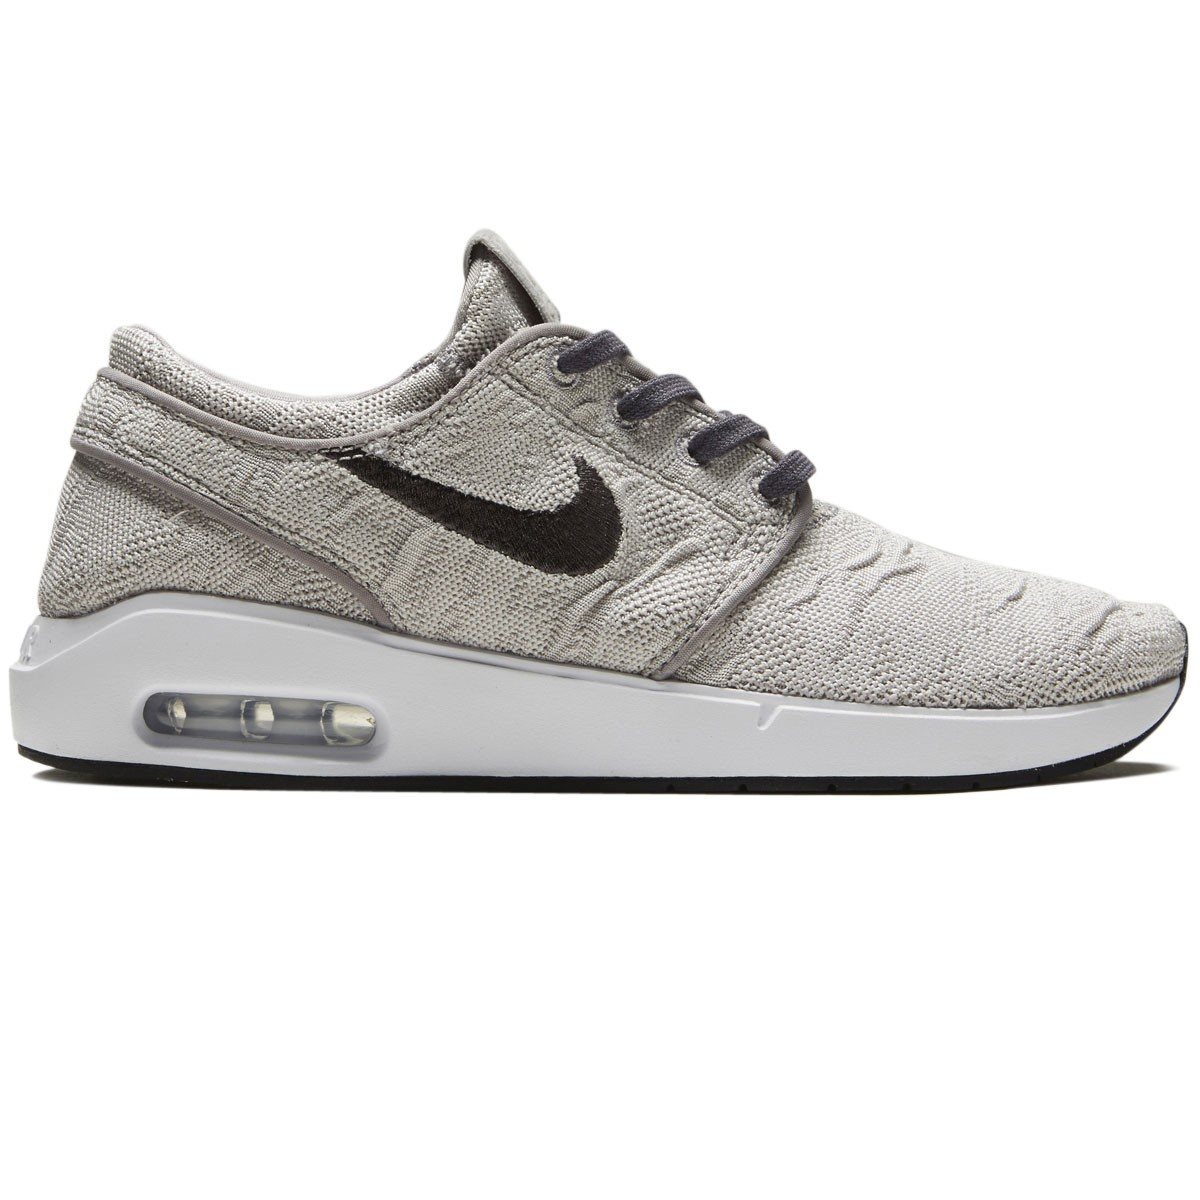 718521c531ce5 Nike SB Air Max Janoski 2 Shoes - Atmosphere Grey/Thunder Grey/White/